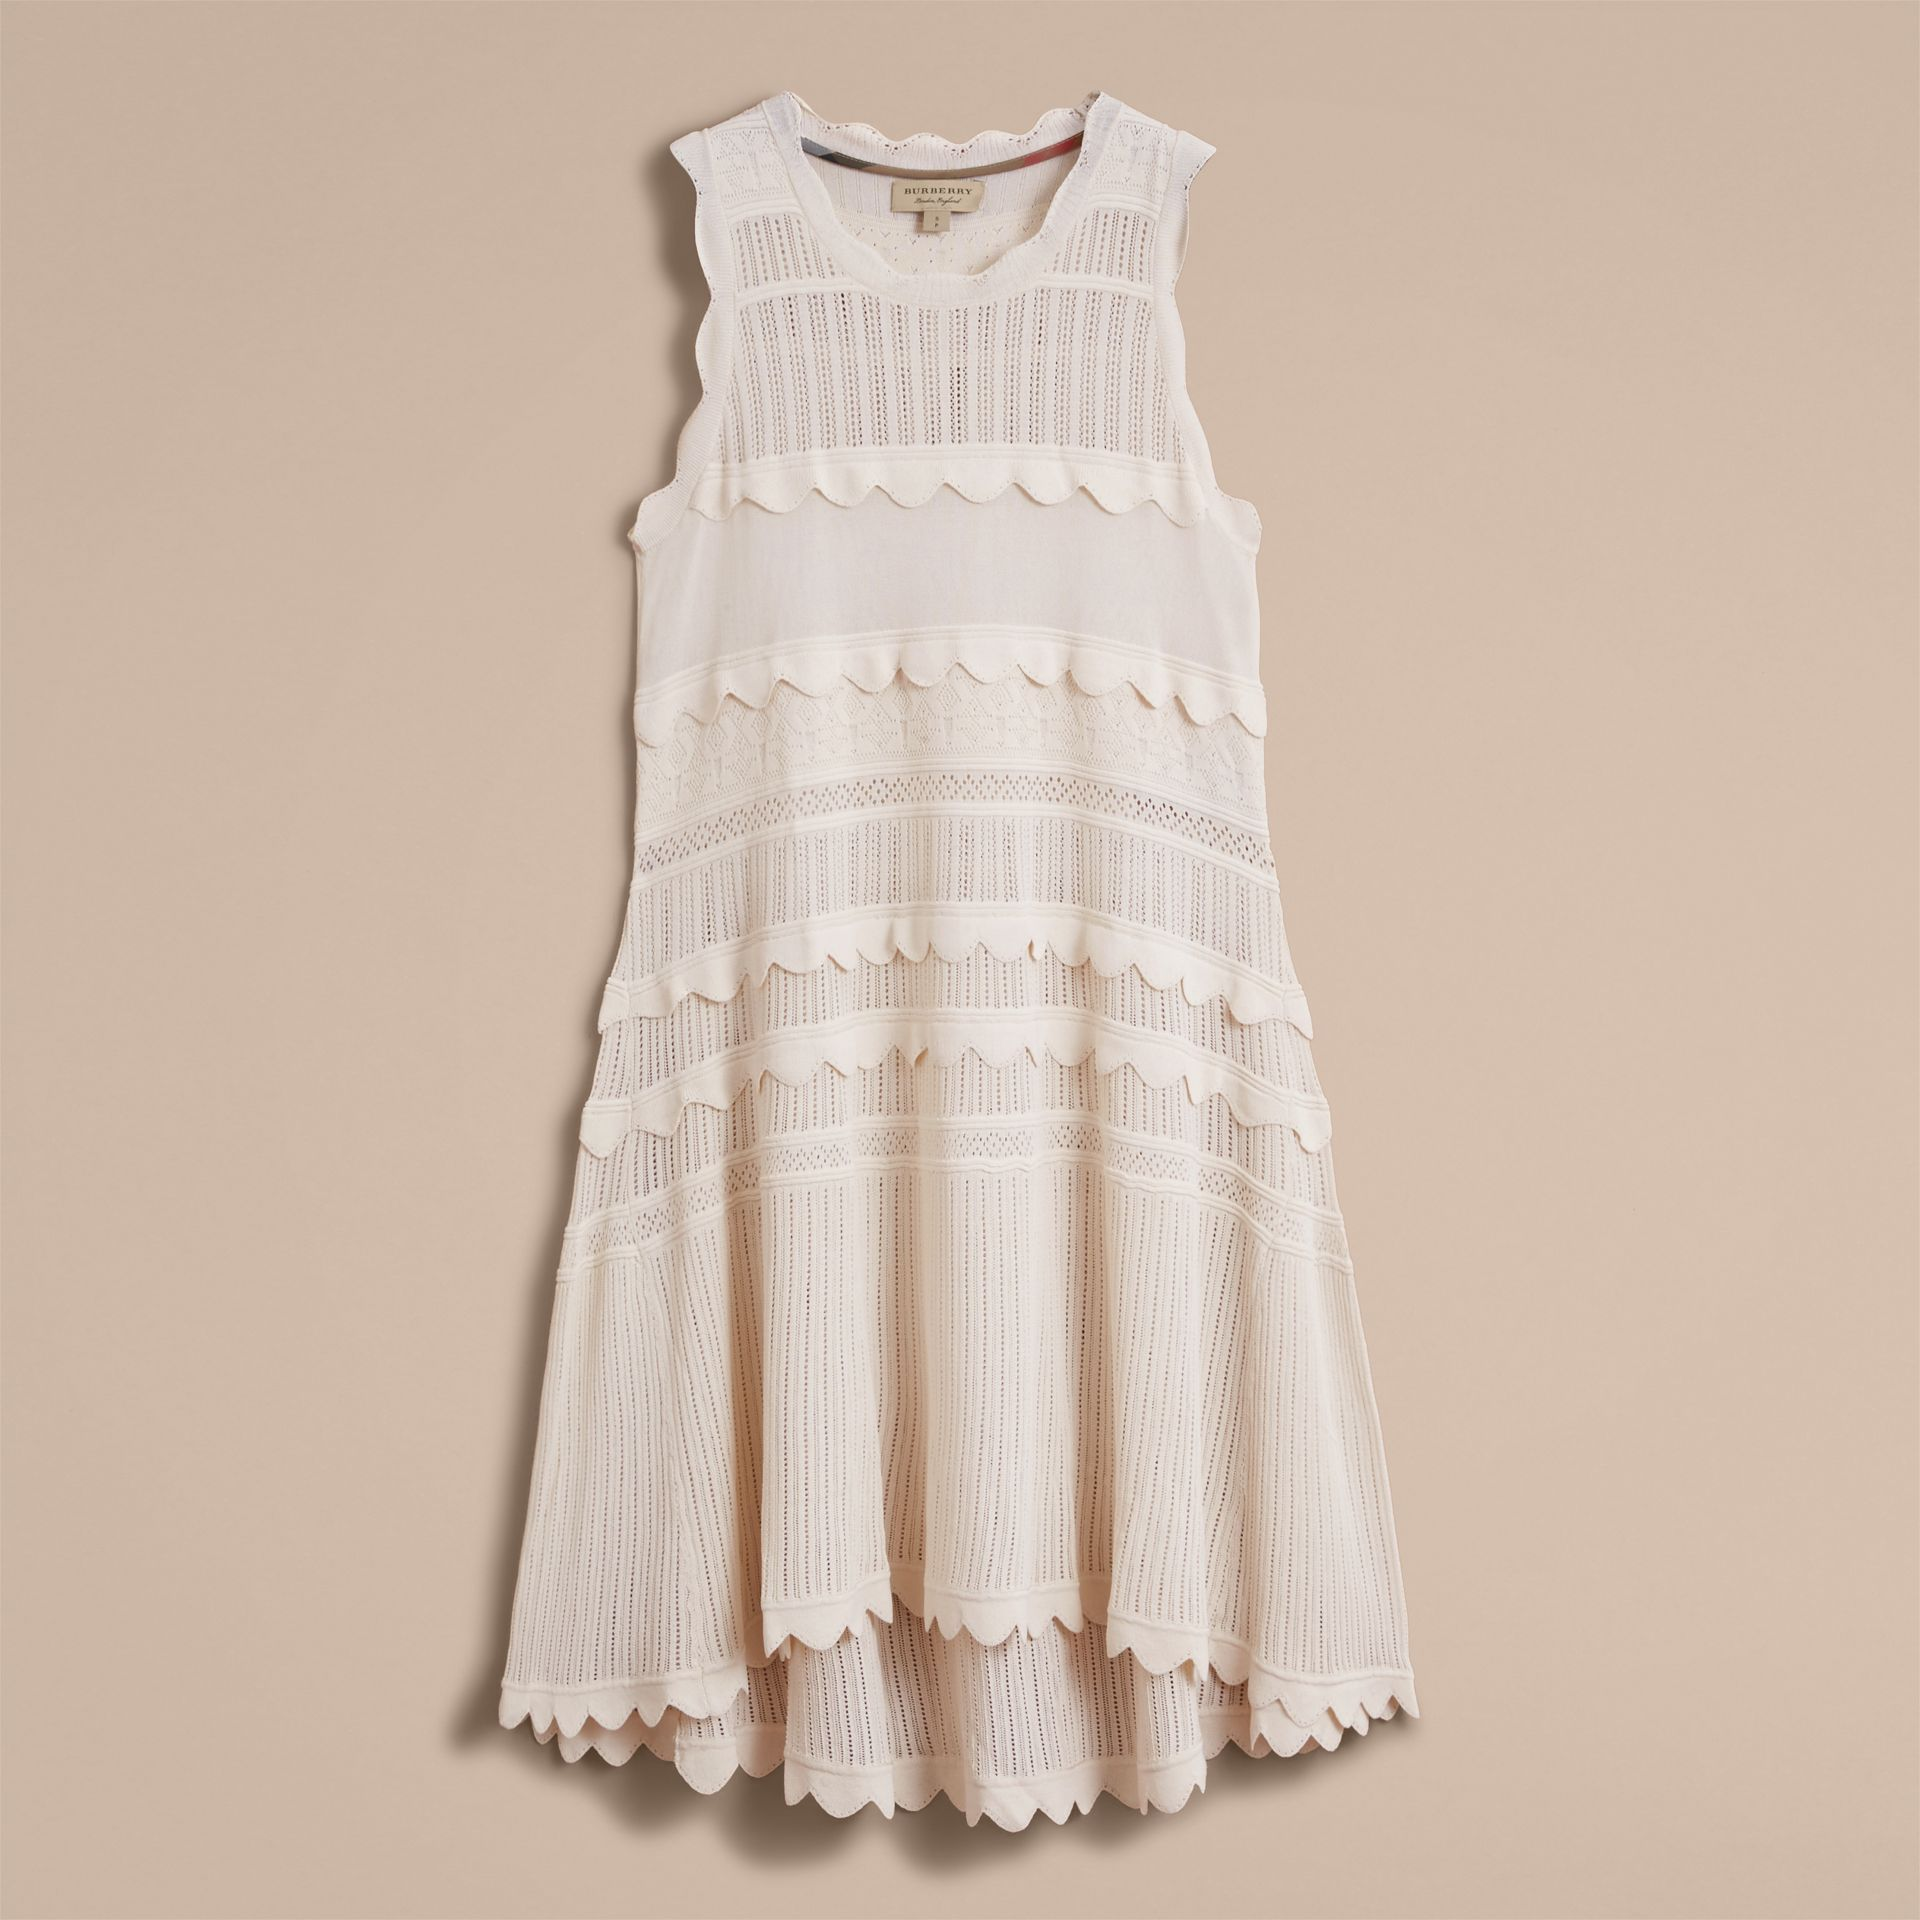 Scallop Detail Multi-stitch Swing Dress in Natural White - Women | Burberry - gallery image 4